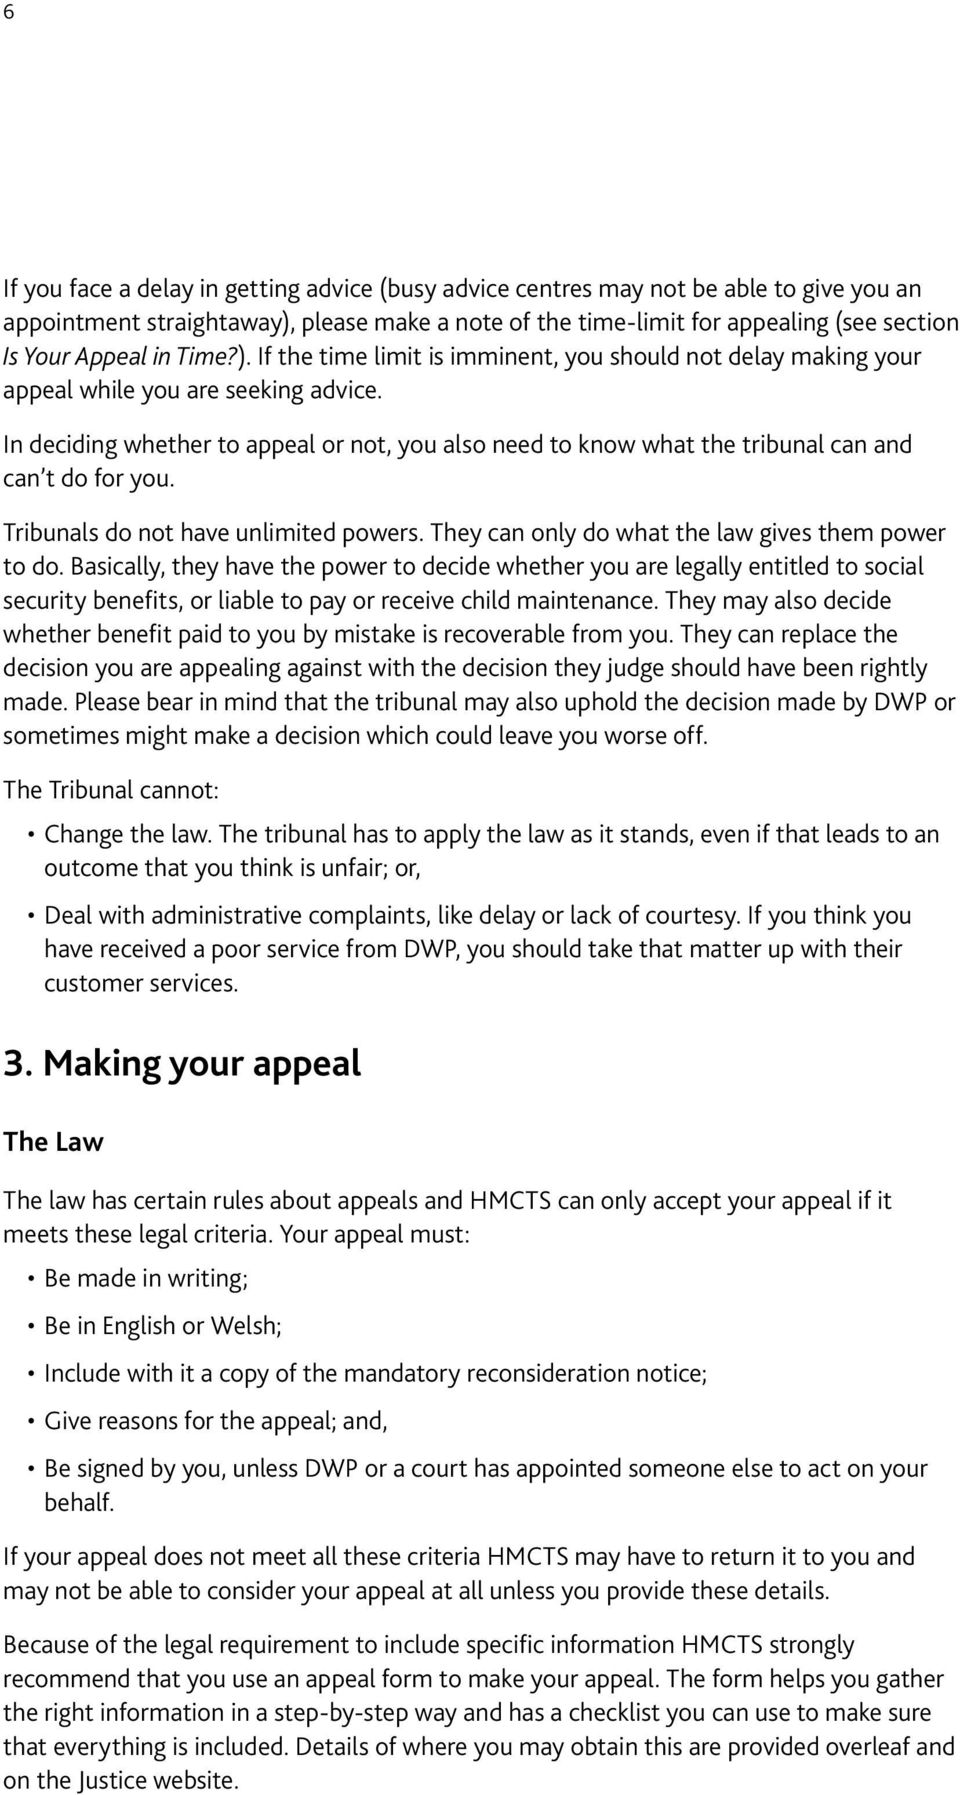 How to appeal against a decision made by the department for work and in deciding whether to appeal or not you also need to know what the tribunal spiritdancerdesigns Gallery